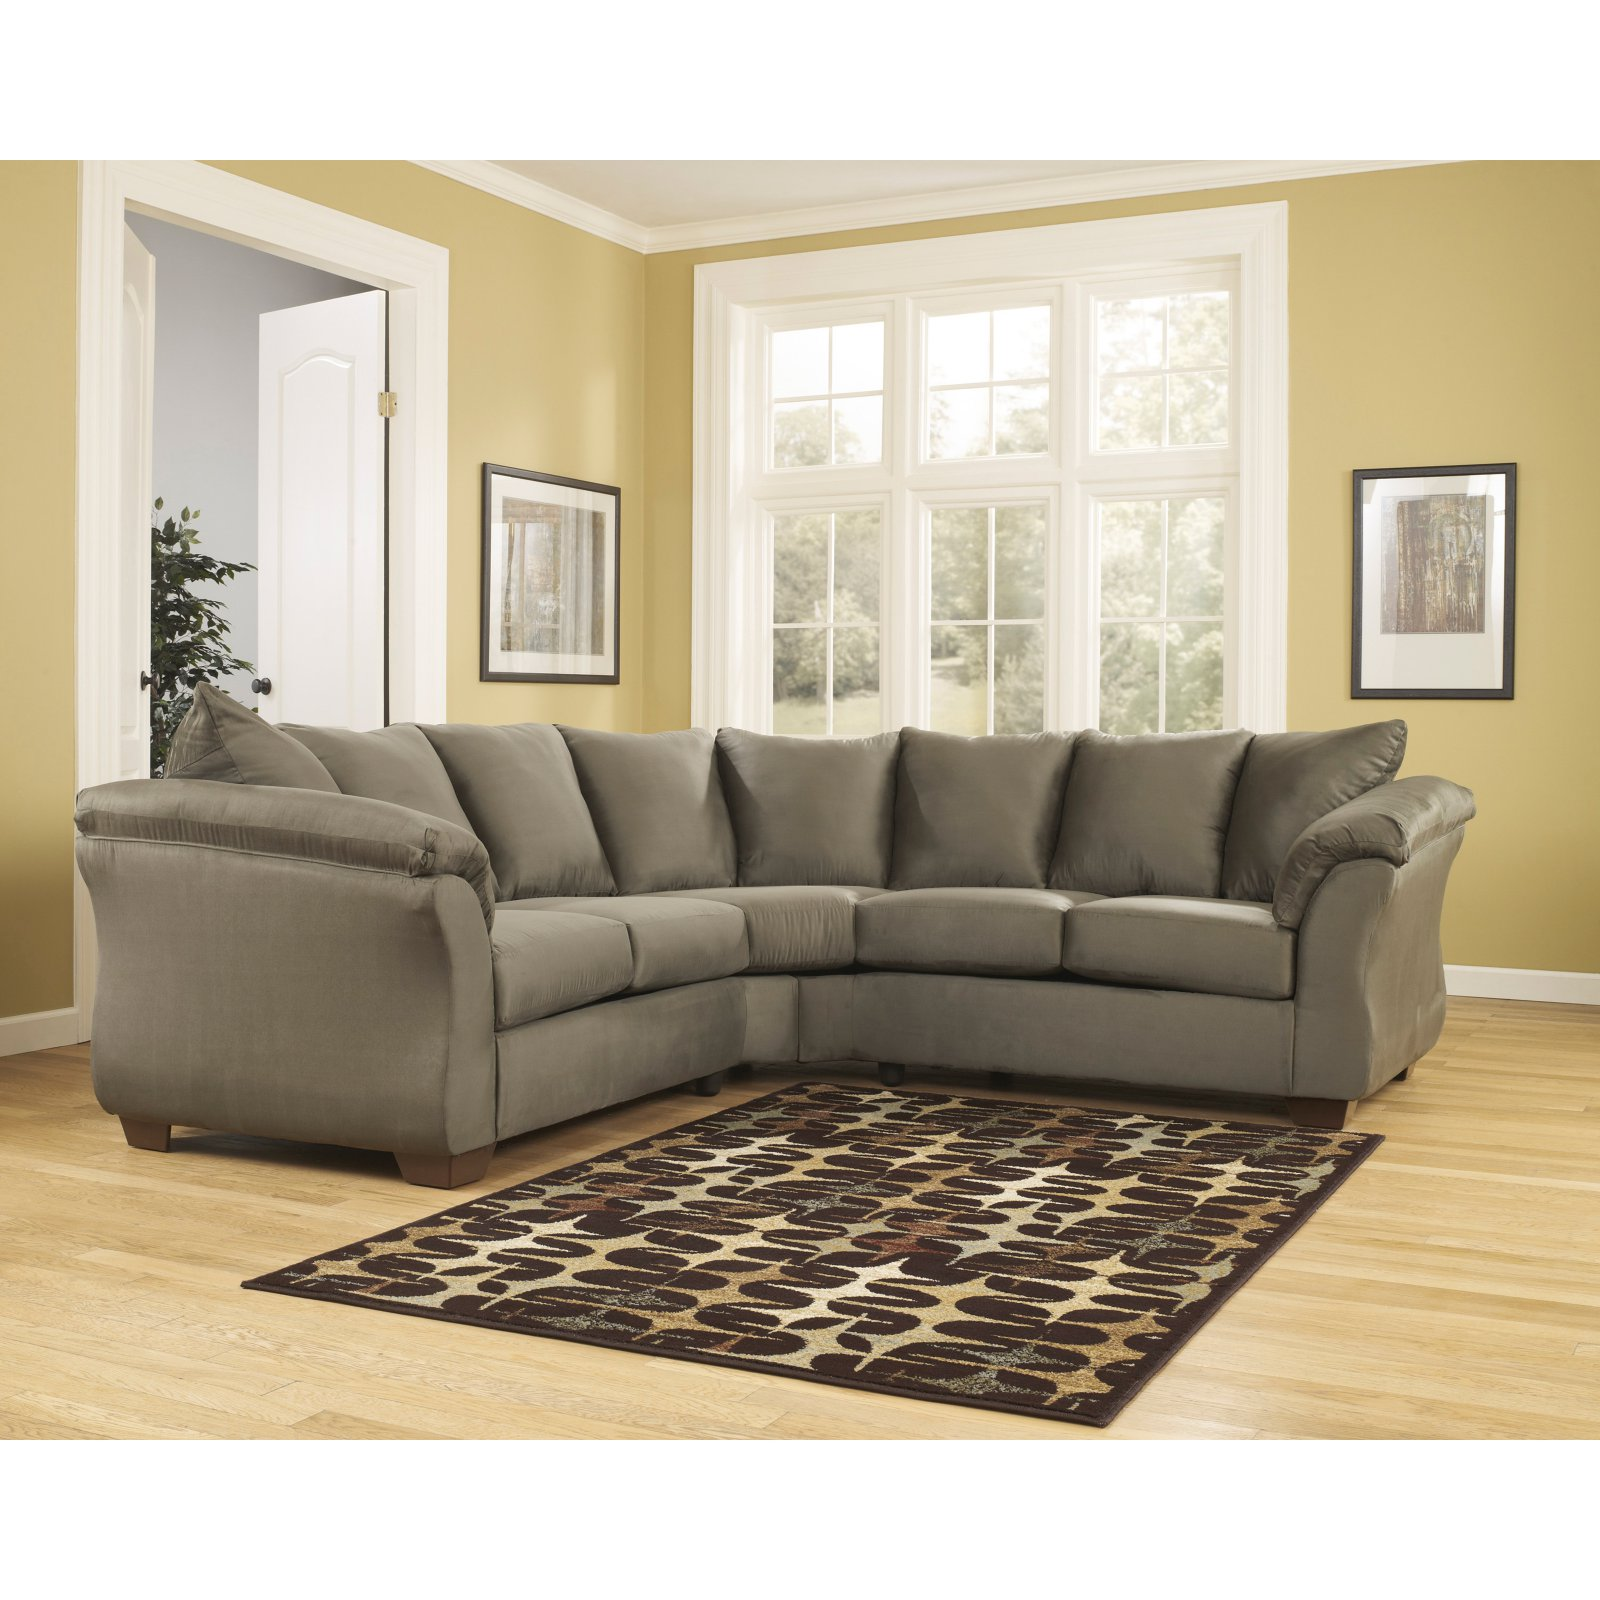 Signature Design by Ashley Darcy Fabric Sectional